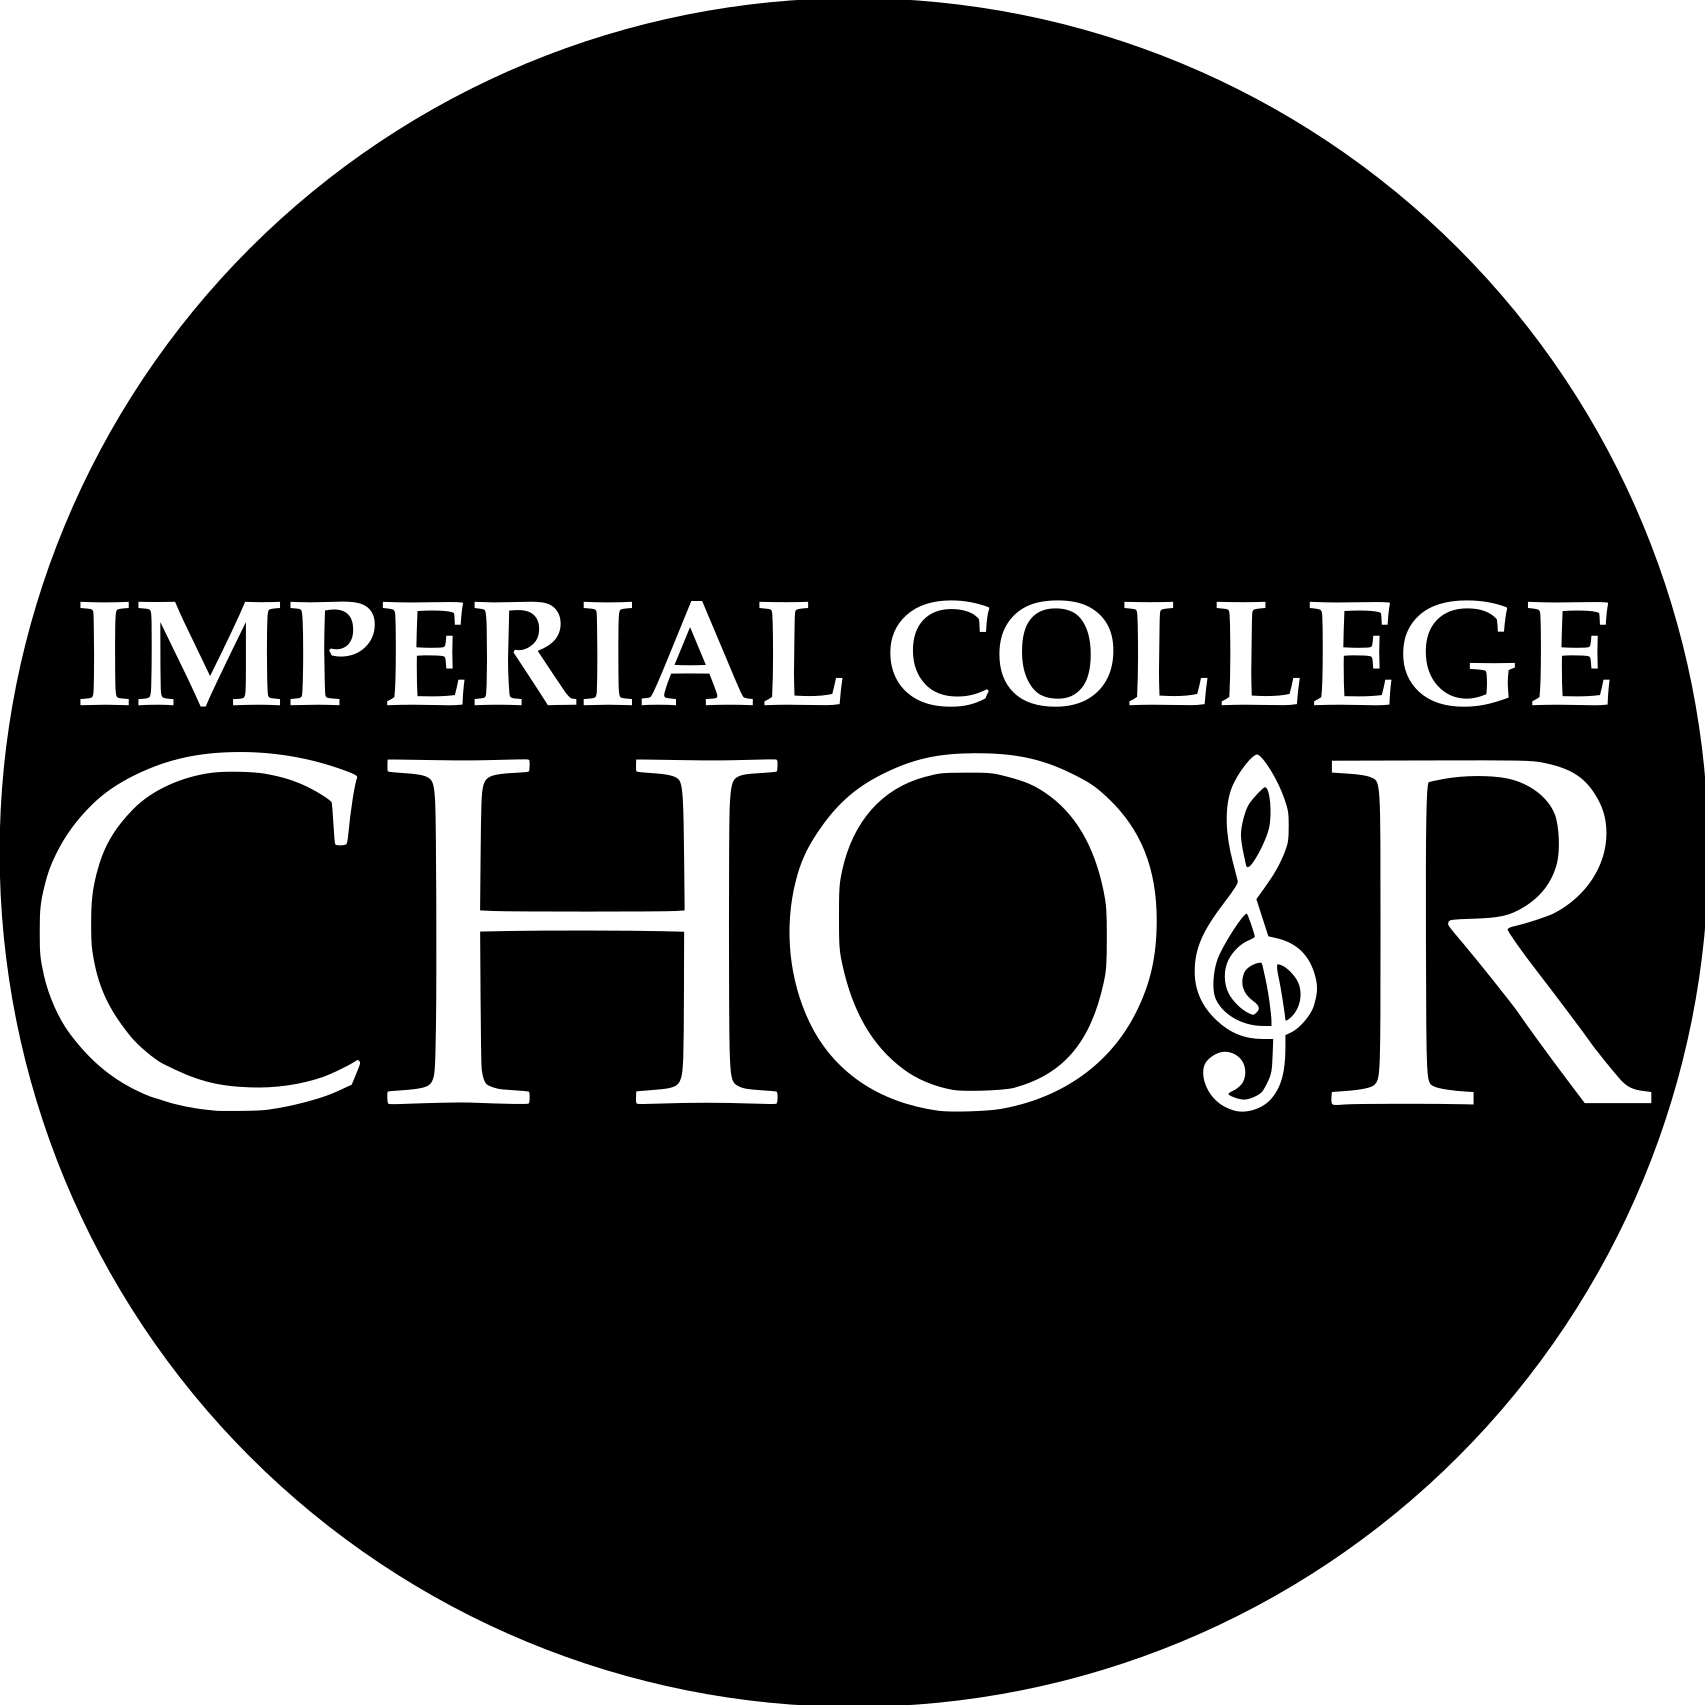 Imperial College Choir